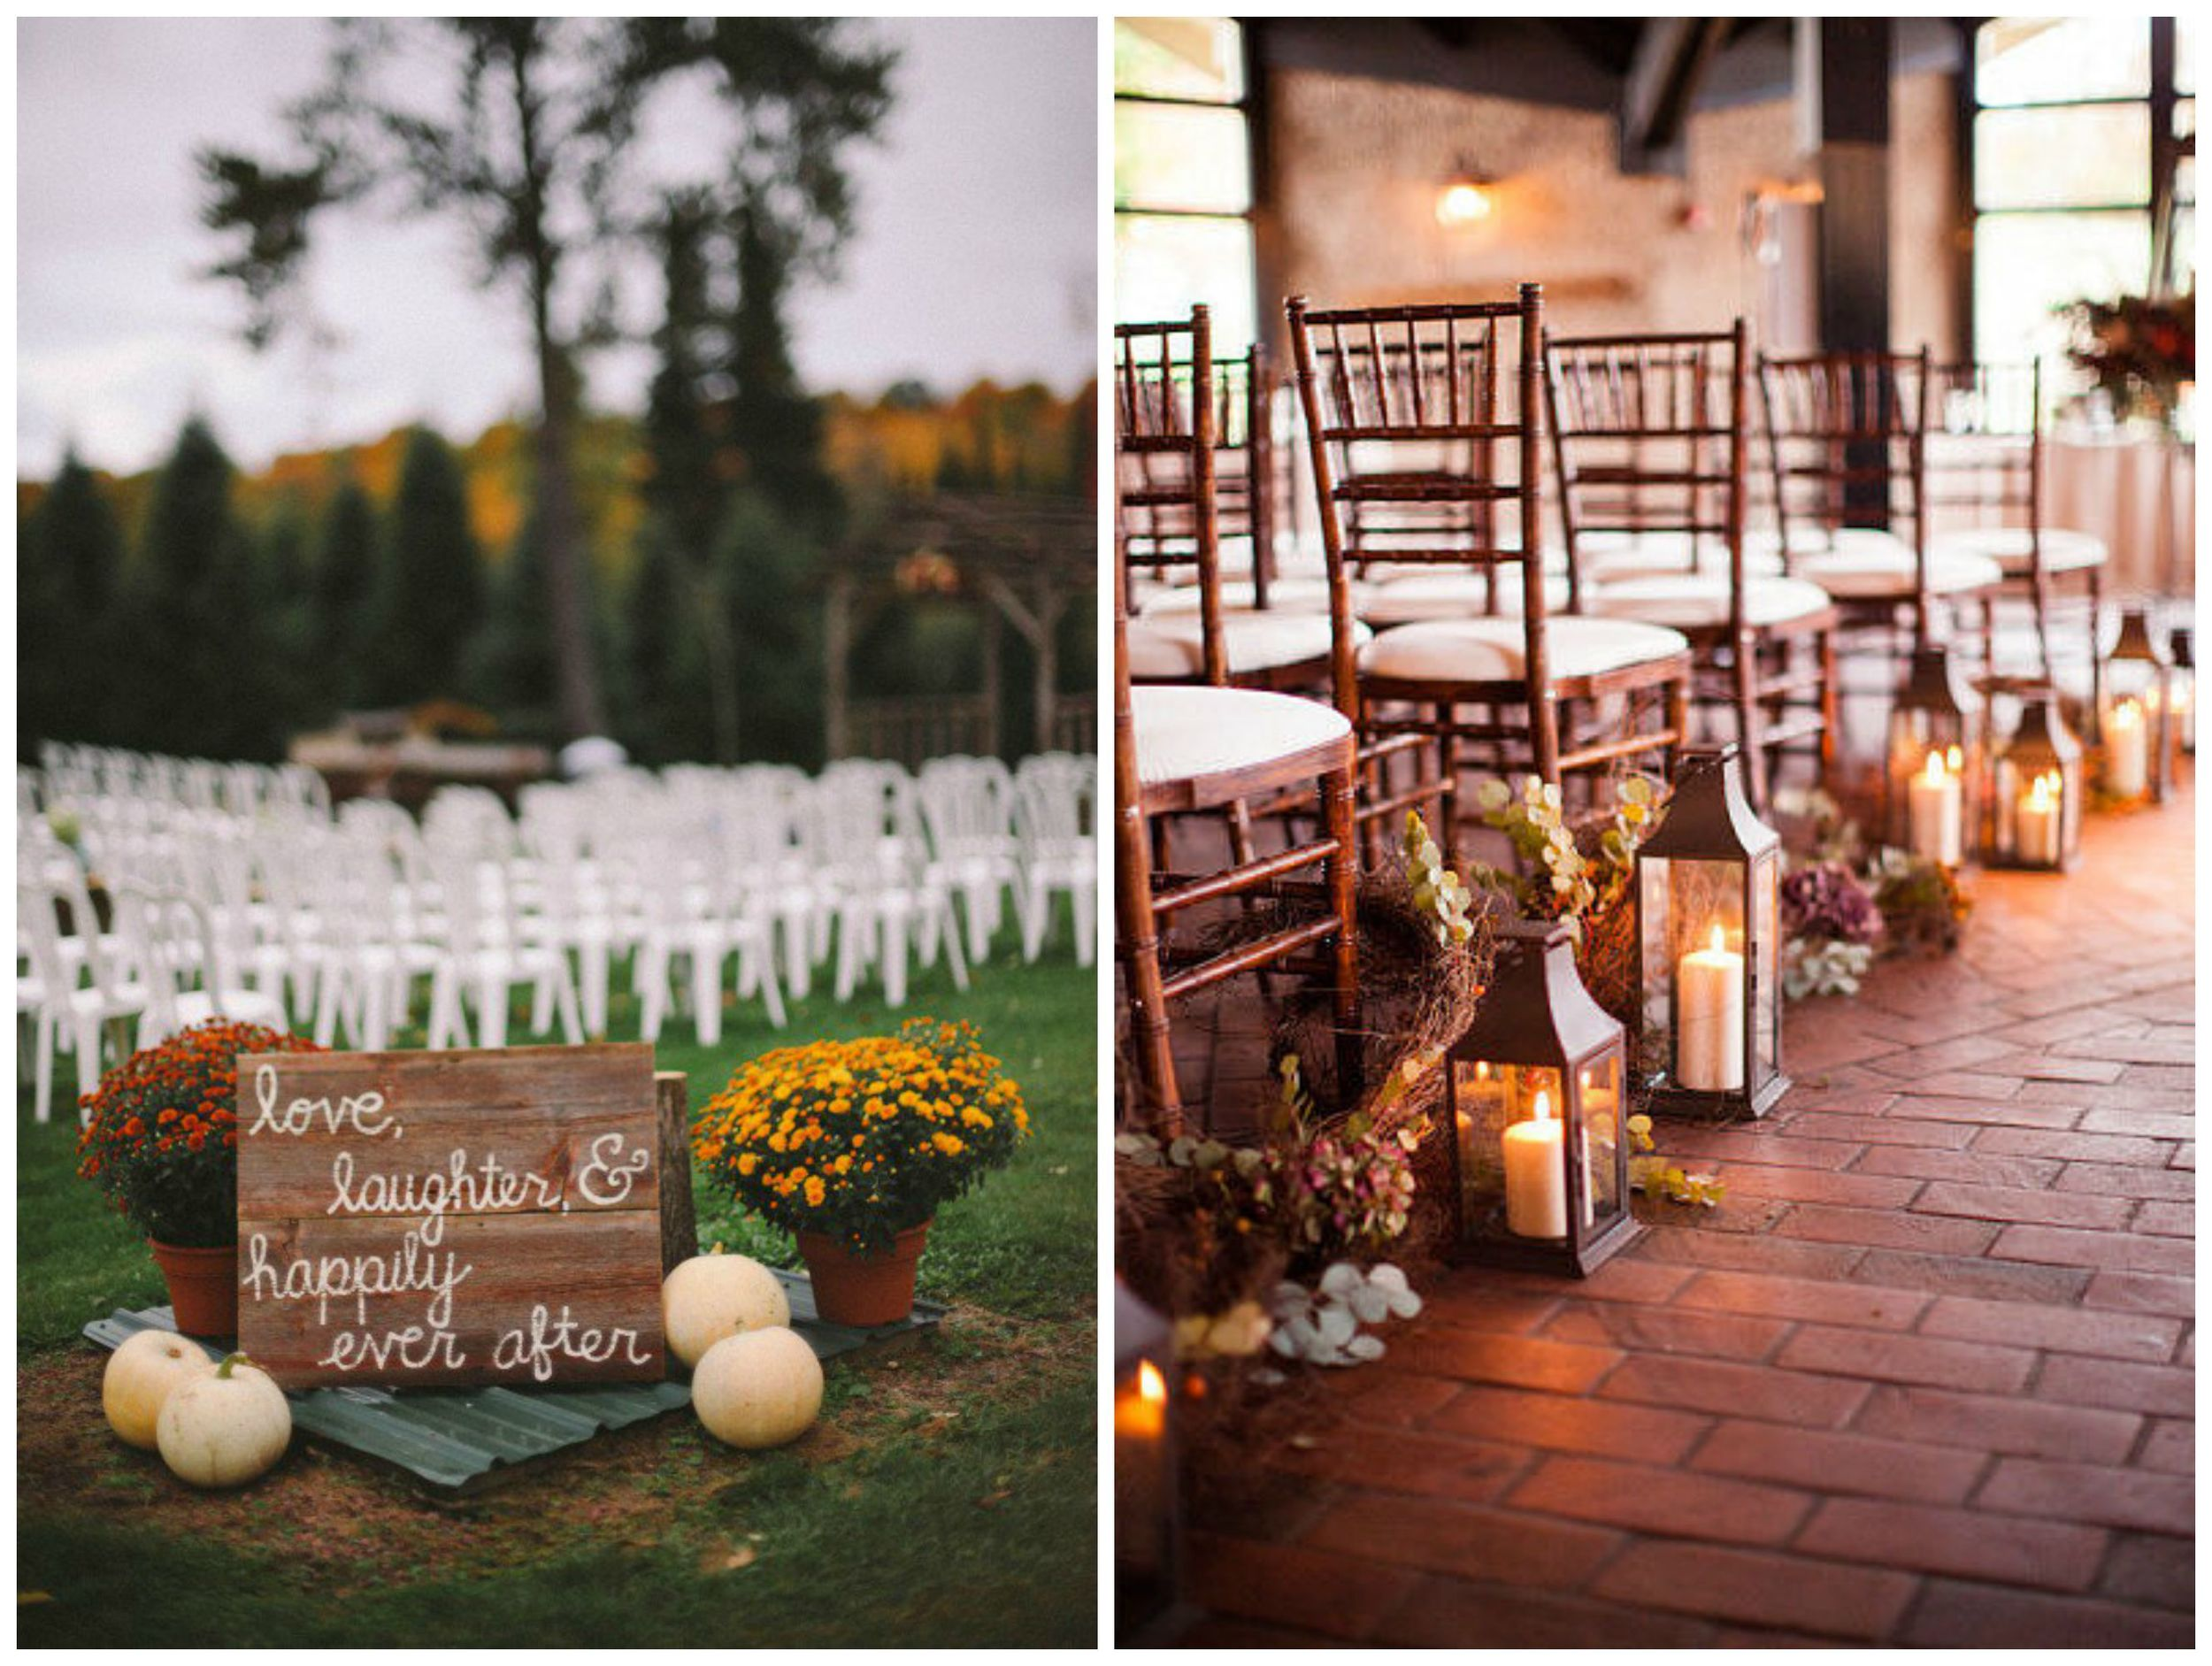 Rustic Wedding Chic ;  PopSugar . Nothing says fall like chrysanthemums, pumpkins or a candlelit aisle.